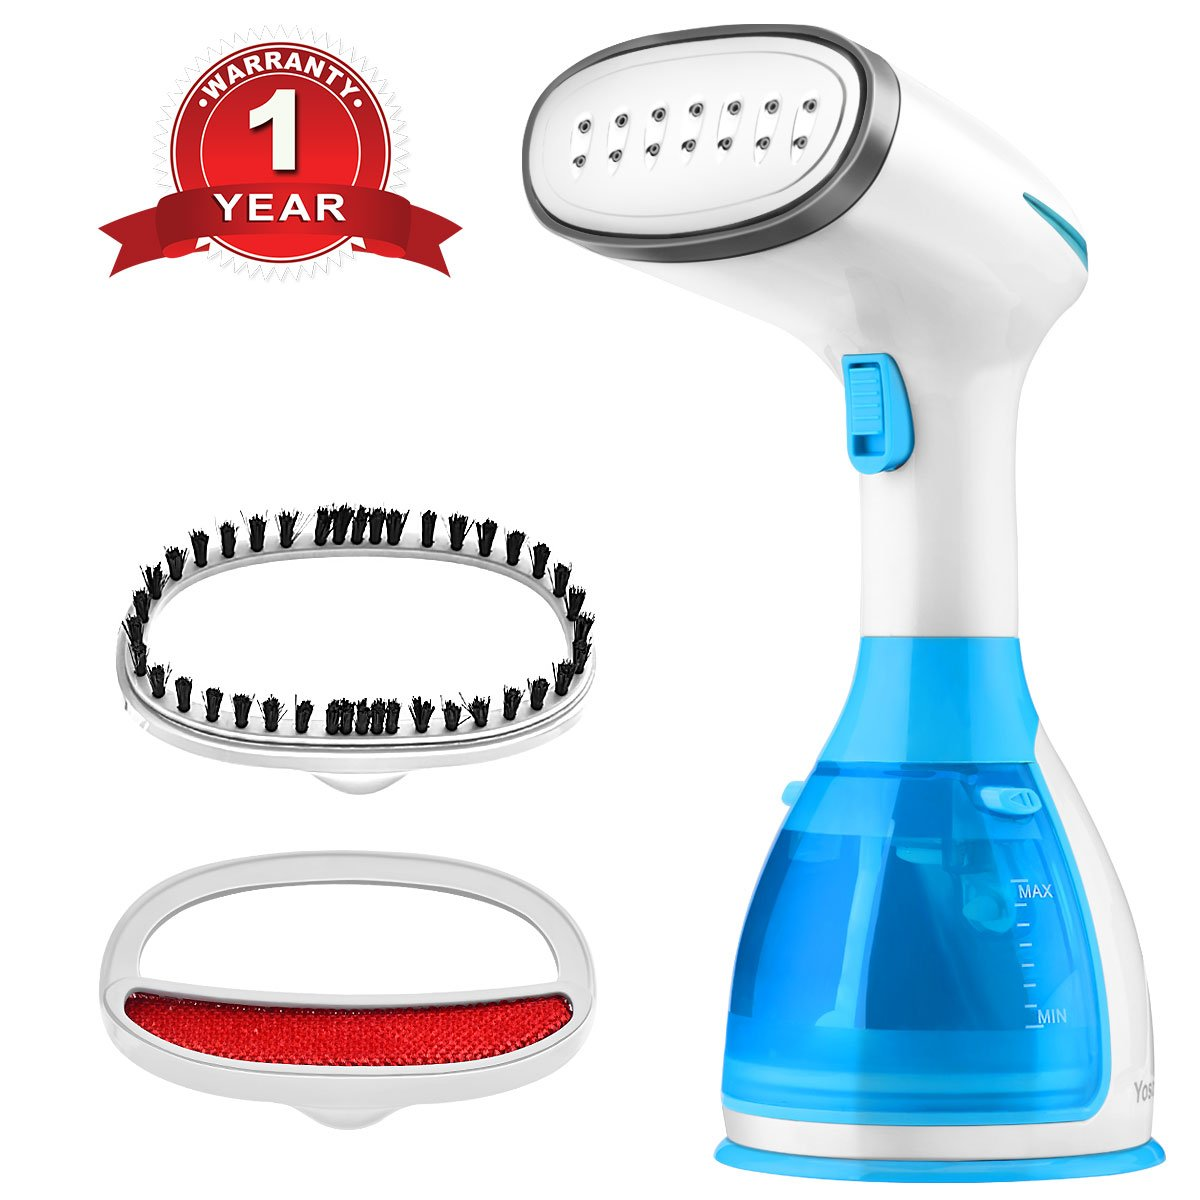 Steamers for Clothes, Yosoo Fabric Steamer, Handheld Garment Steamer, Fast Heat-up with 280milliliter Capacity Portable for Home and Travel Semme